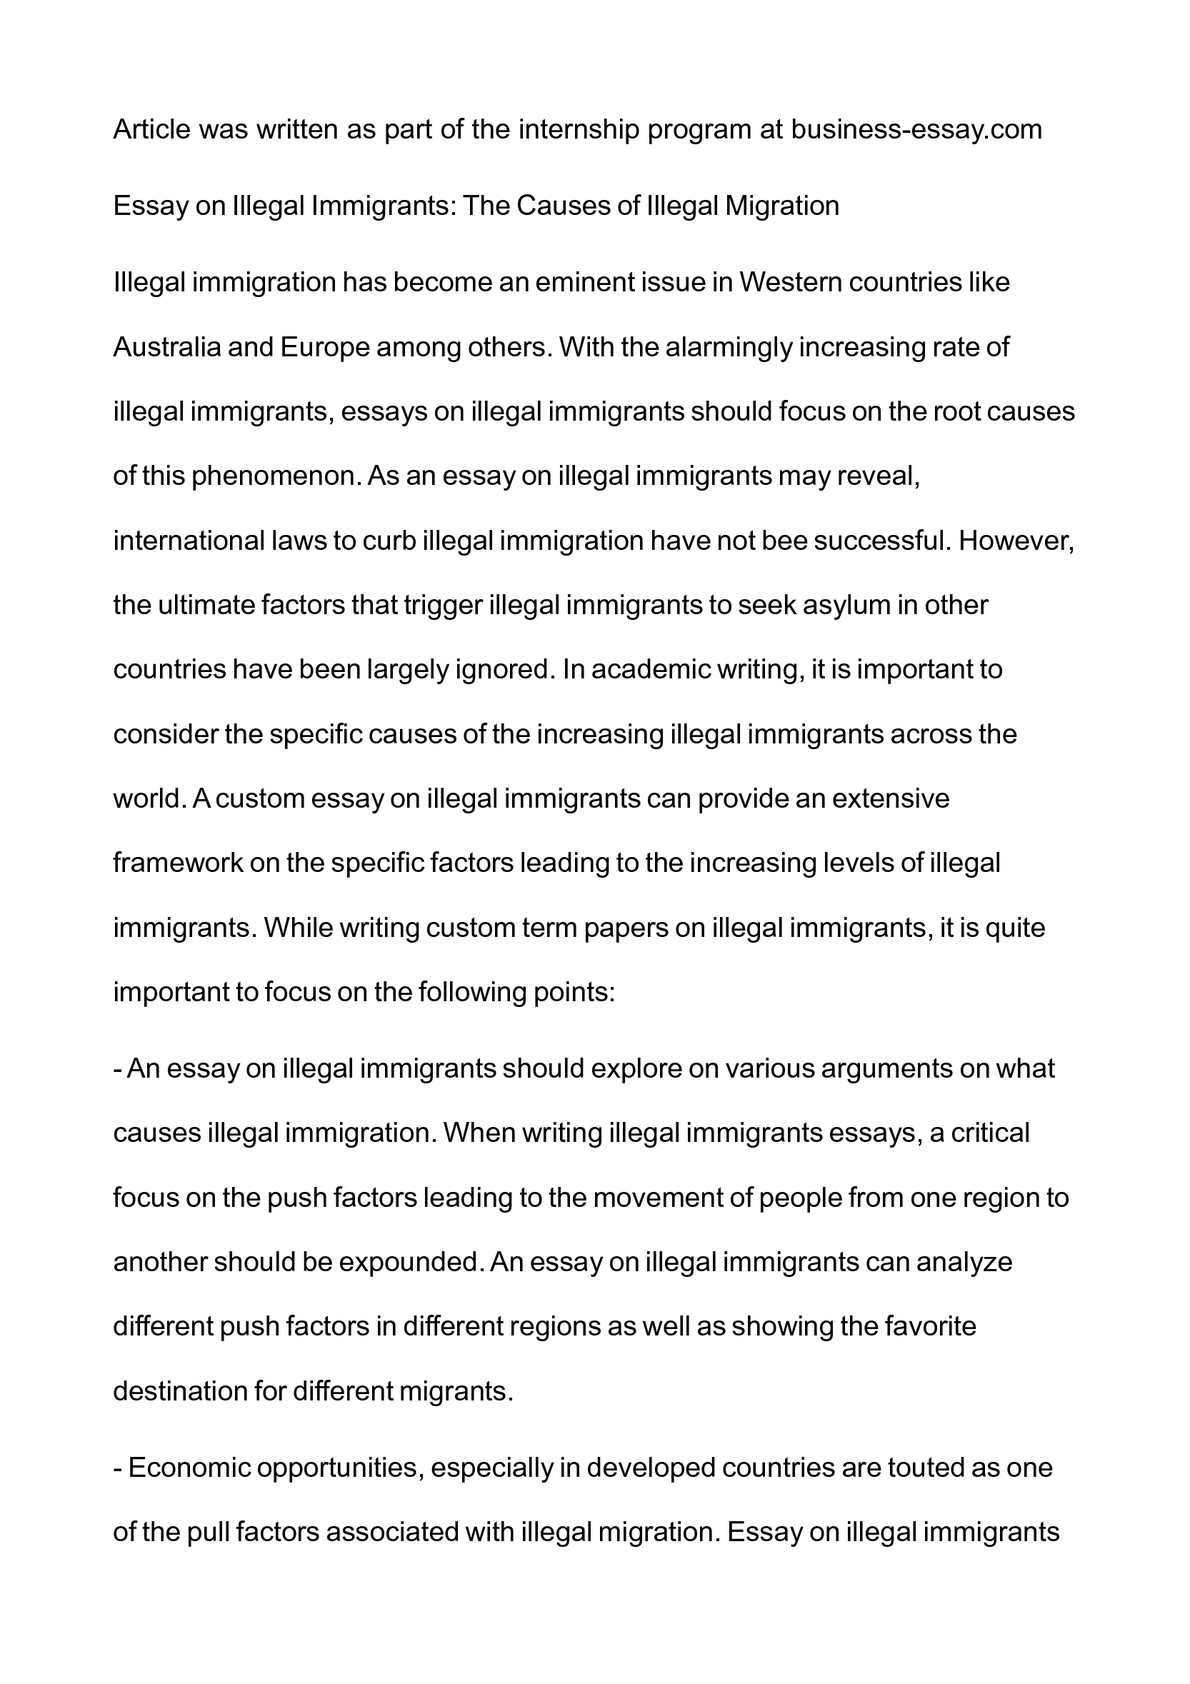 persuasive essay on immigration persuasive essay on immigration  illegal immigration essays calamatildecopyo essay on illegal immigrants the causes of illegal migration argumentative thesis statement immigration